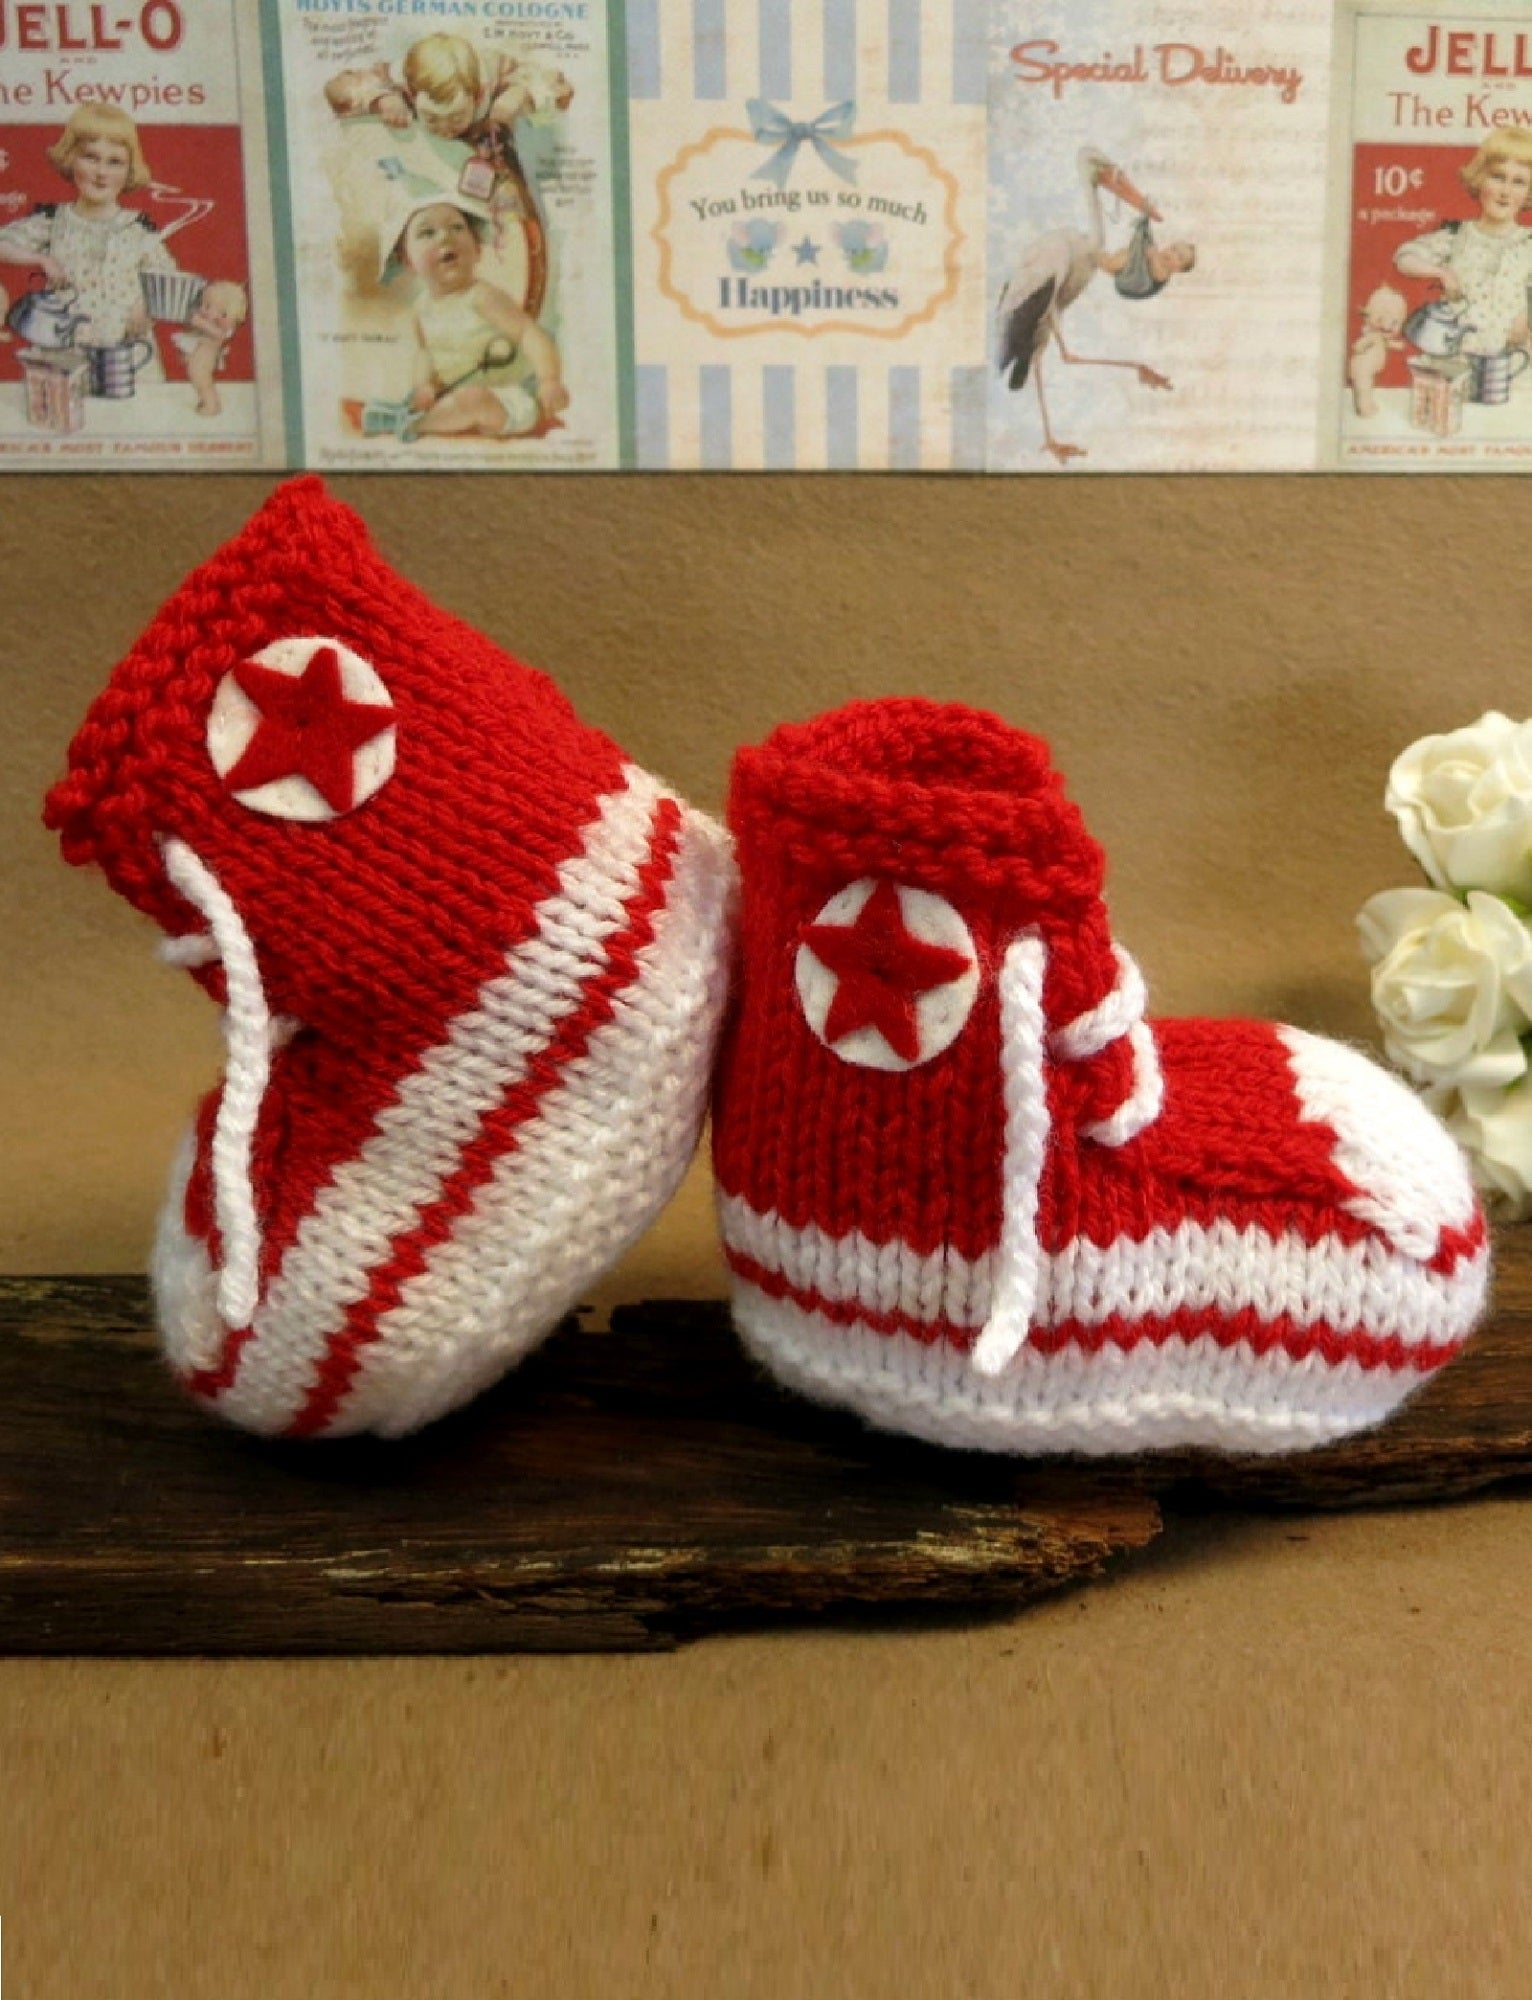 Baby-Booties-Hi-Tops-0-2-Years-Nchanted-Gifts